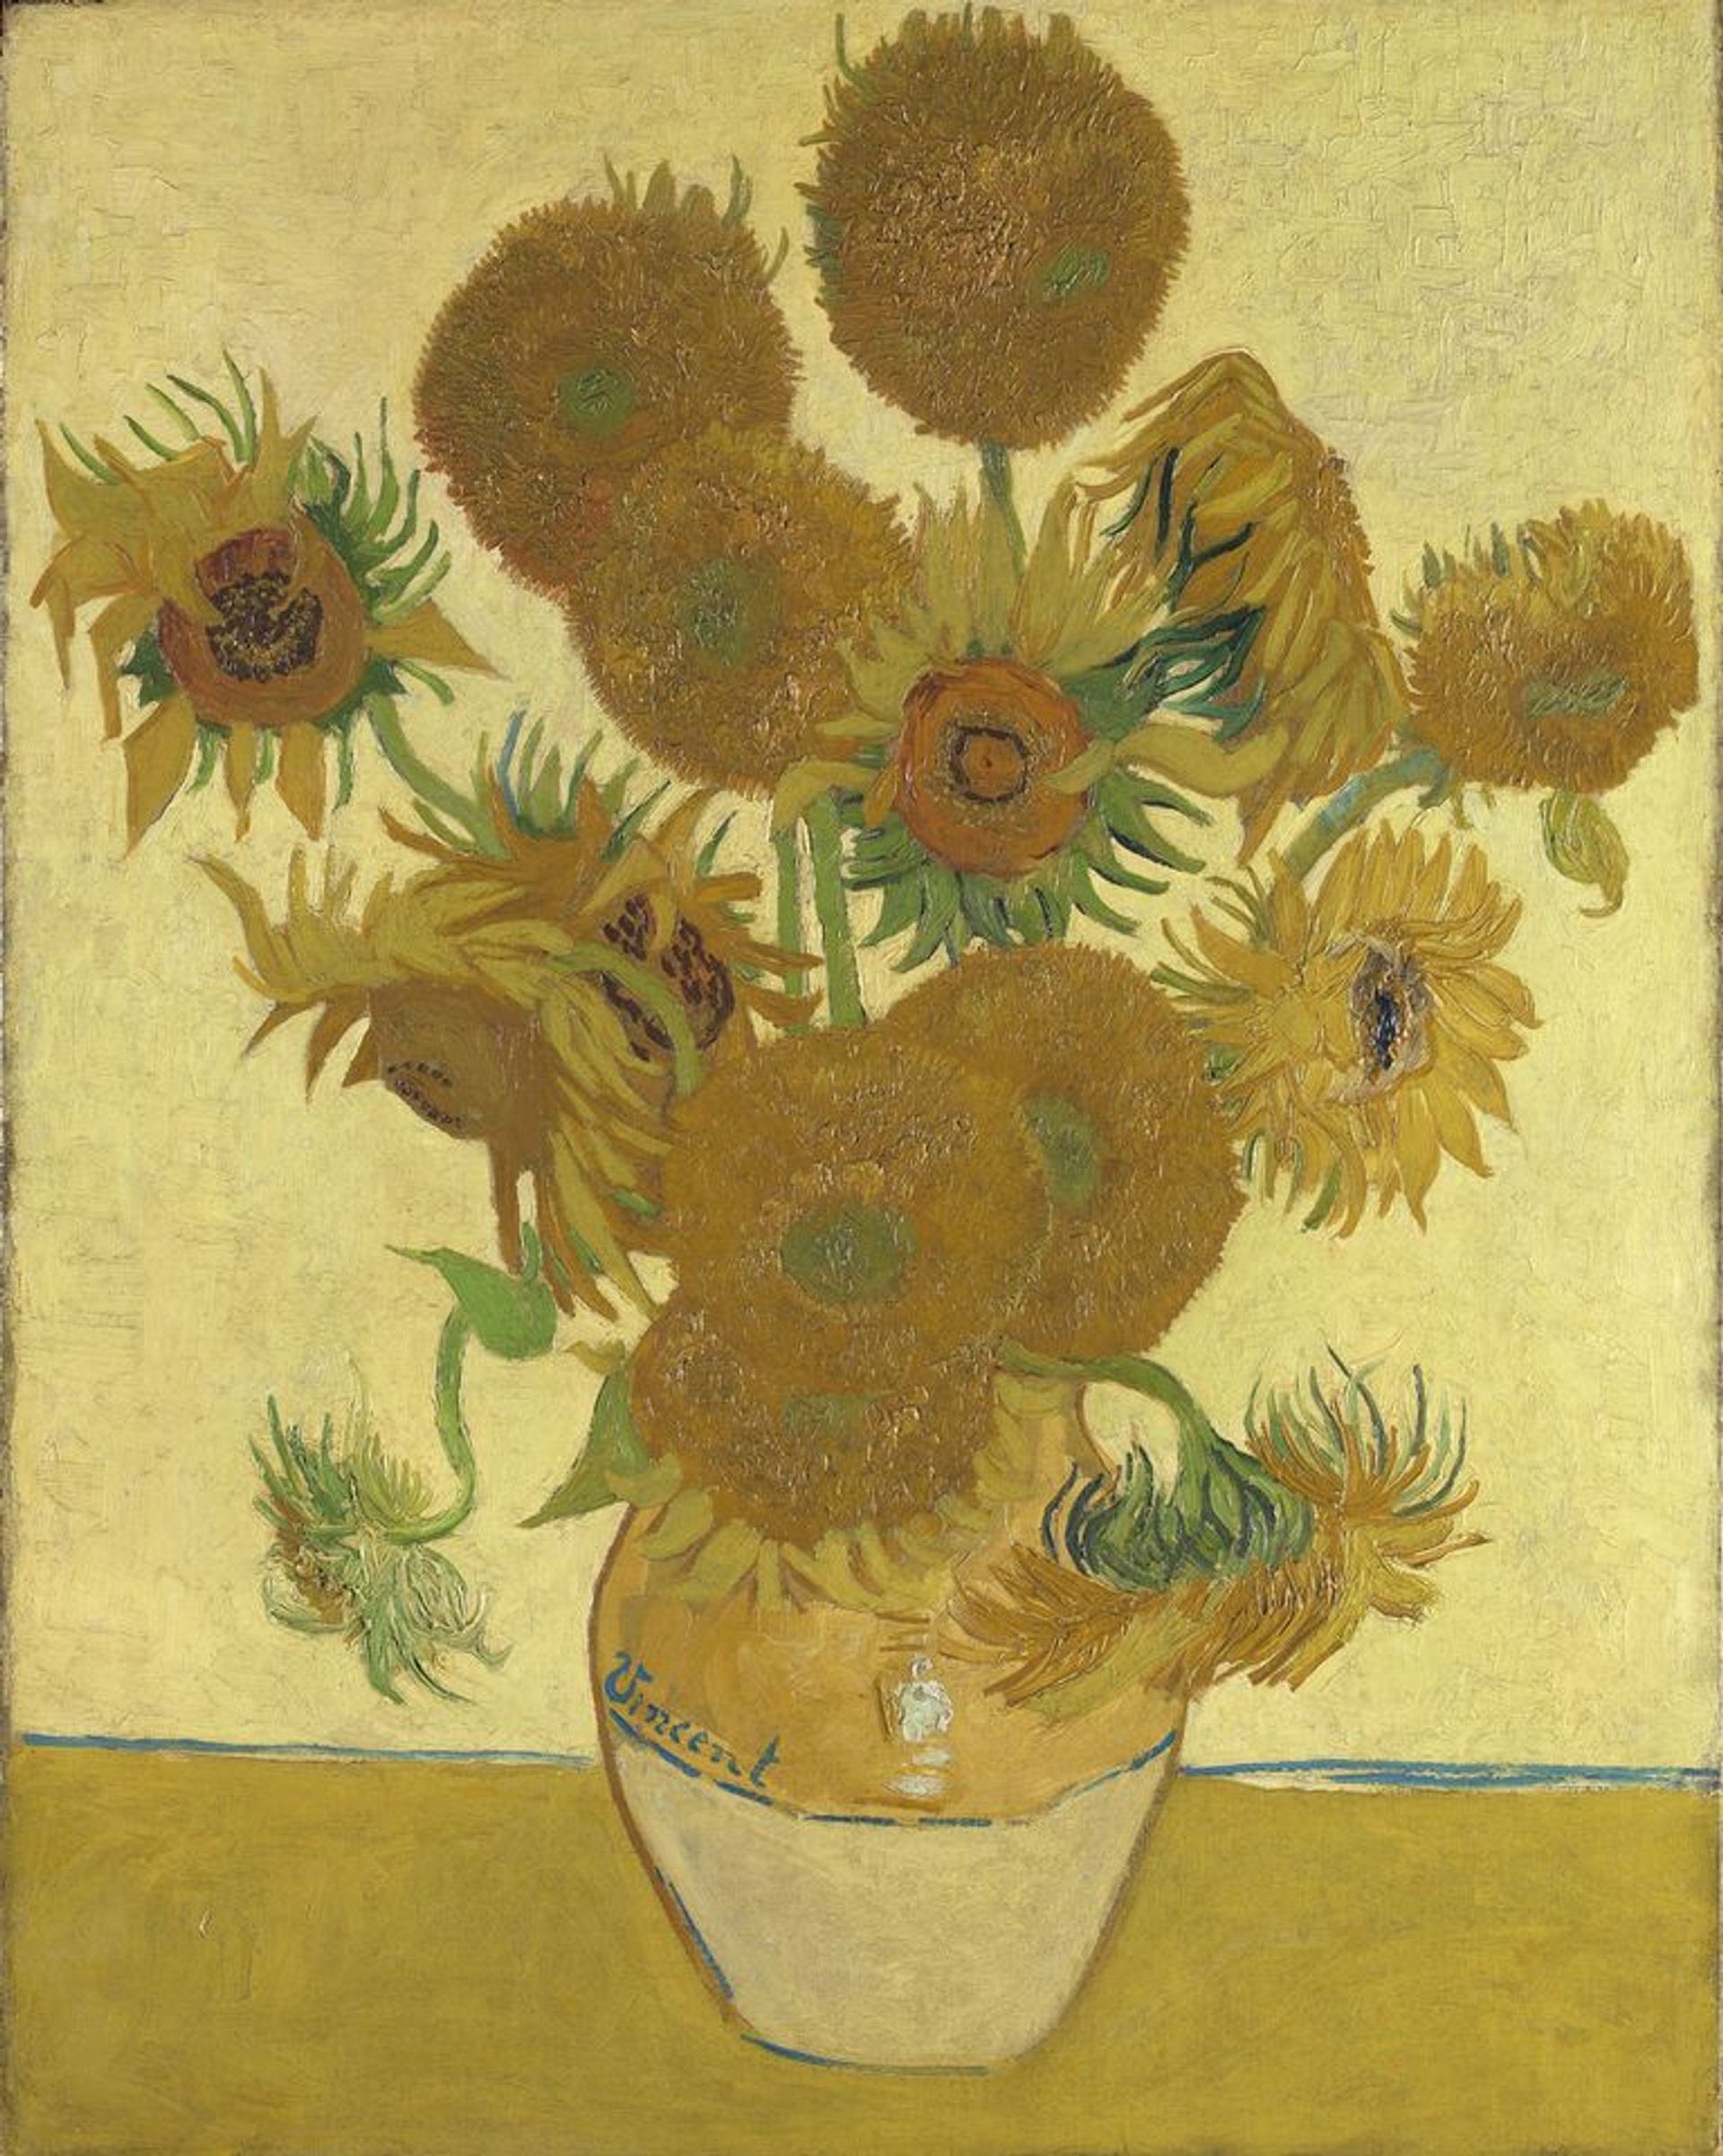 Van Gogh's Sunflowers (1888) in the National Gallery is going to Japan © The National Gallery, London/ Bought, Courtauld Fund, 1924